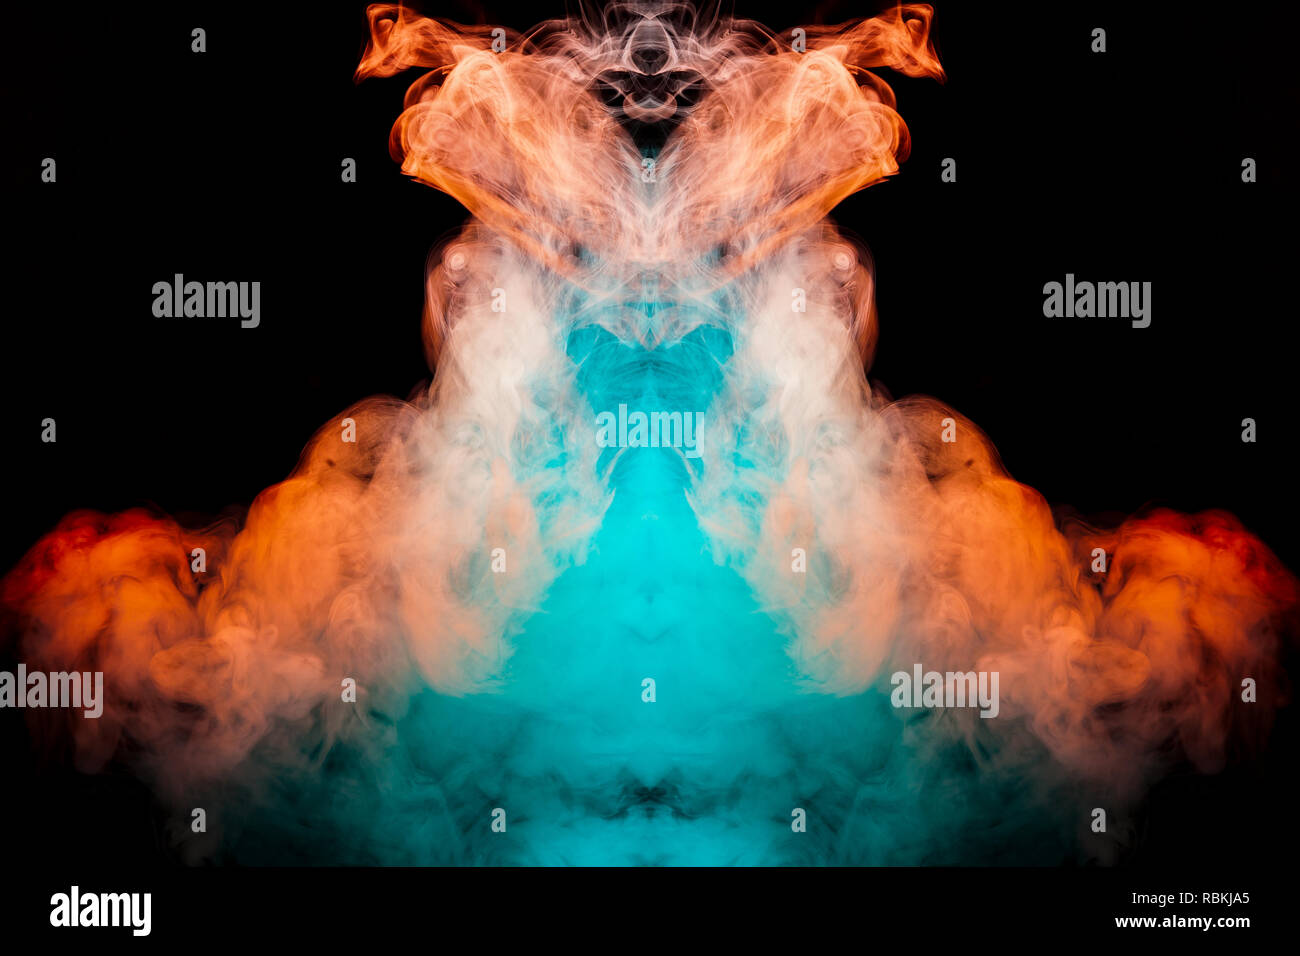 Multicolored curling smoke rising upwards in a pillar, red blue vapor twisting into abstract shapes and patterns on a black background, repeating the  - Stock Image